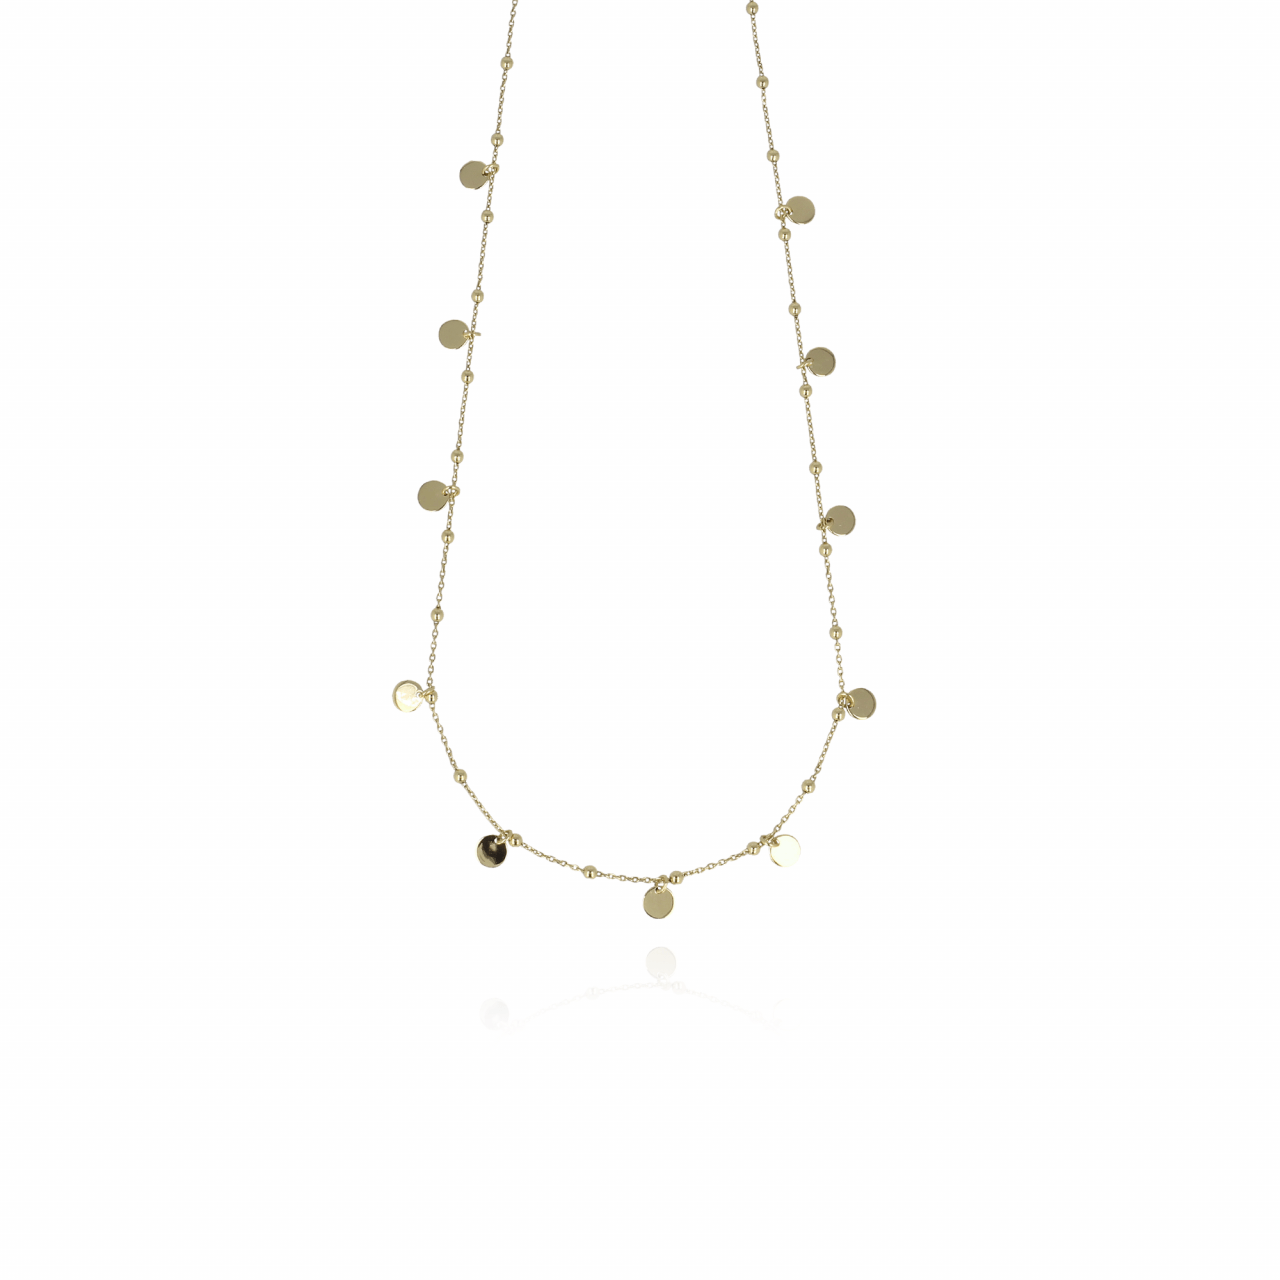 Golden Rosary Charms necklace